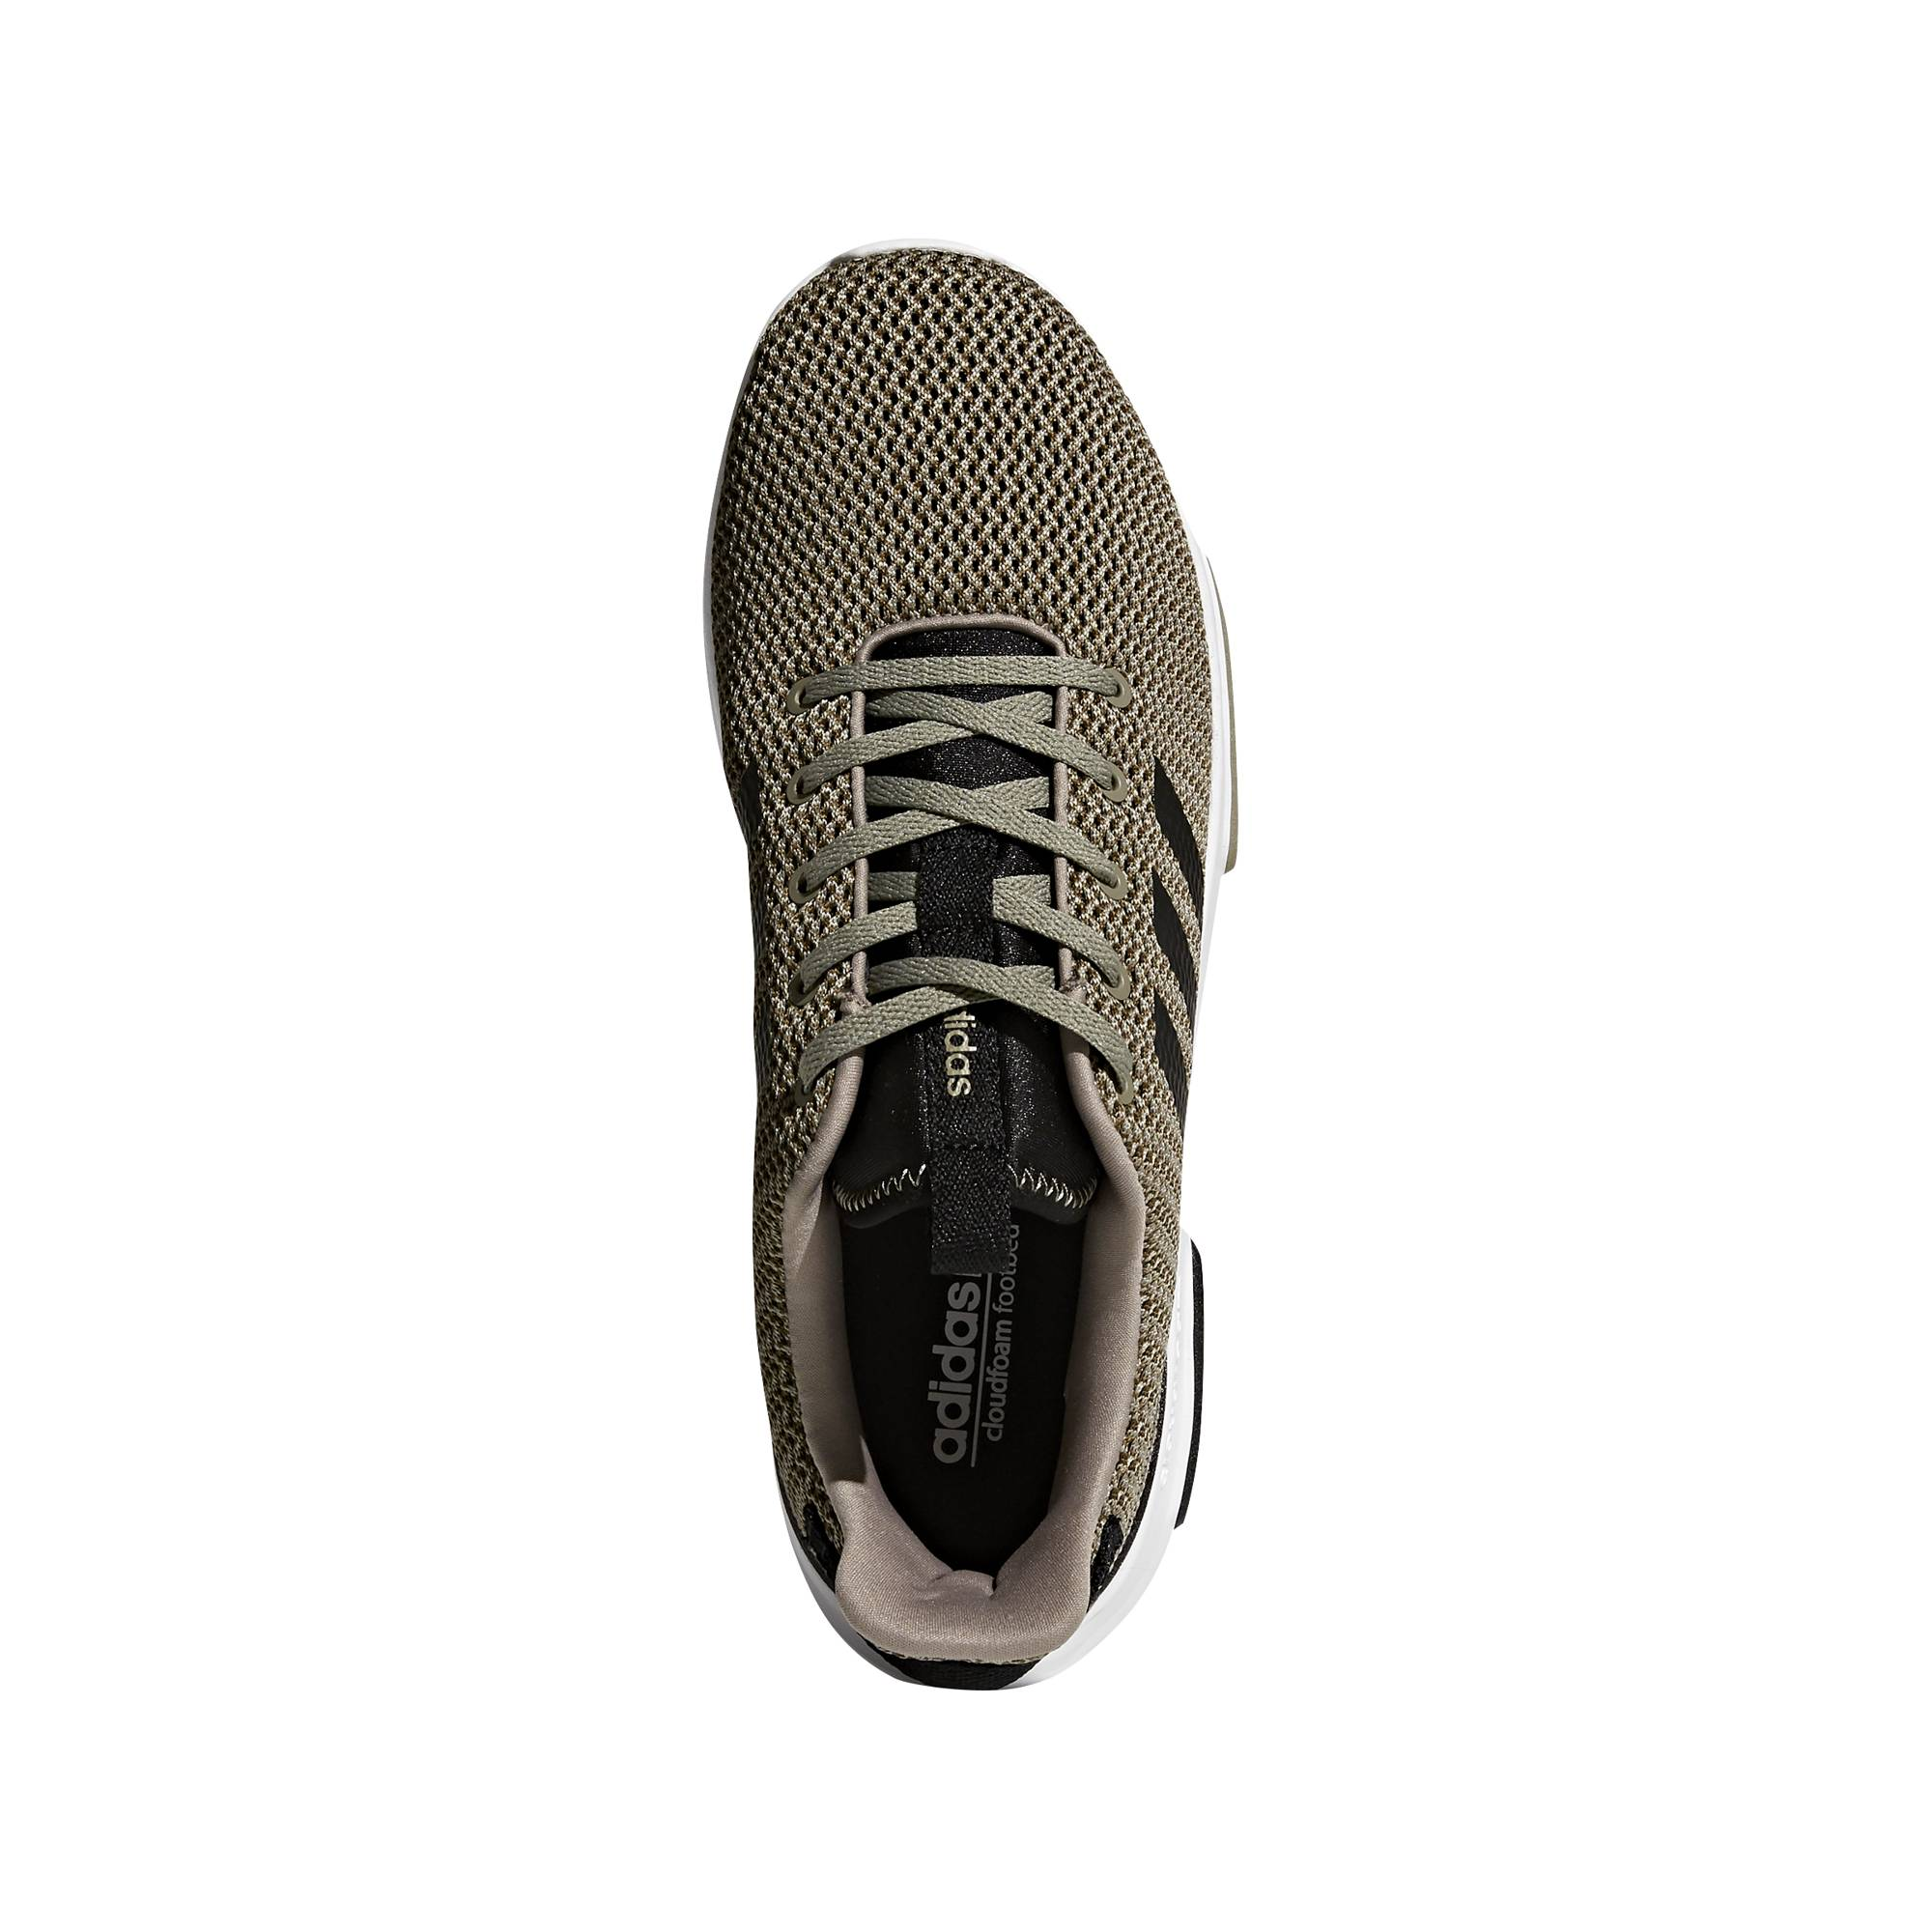 Greece Adidas Neo Running Summer Shoes White Casual Mens Grey